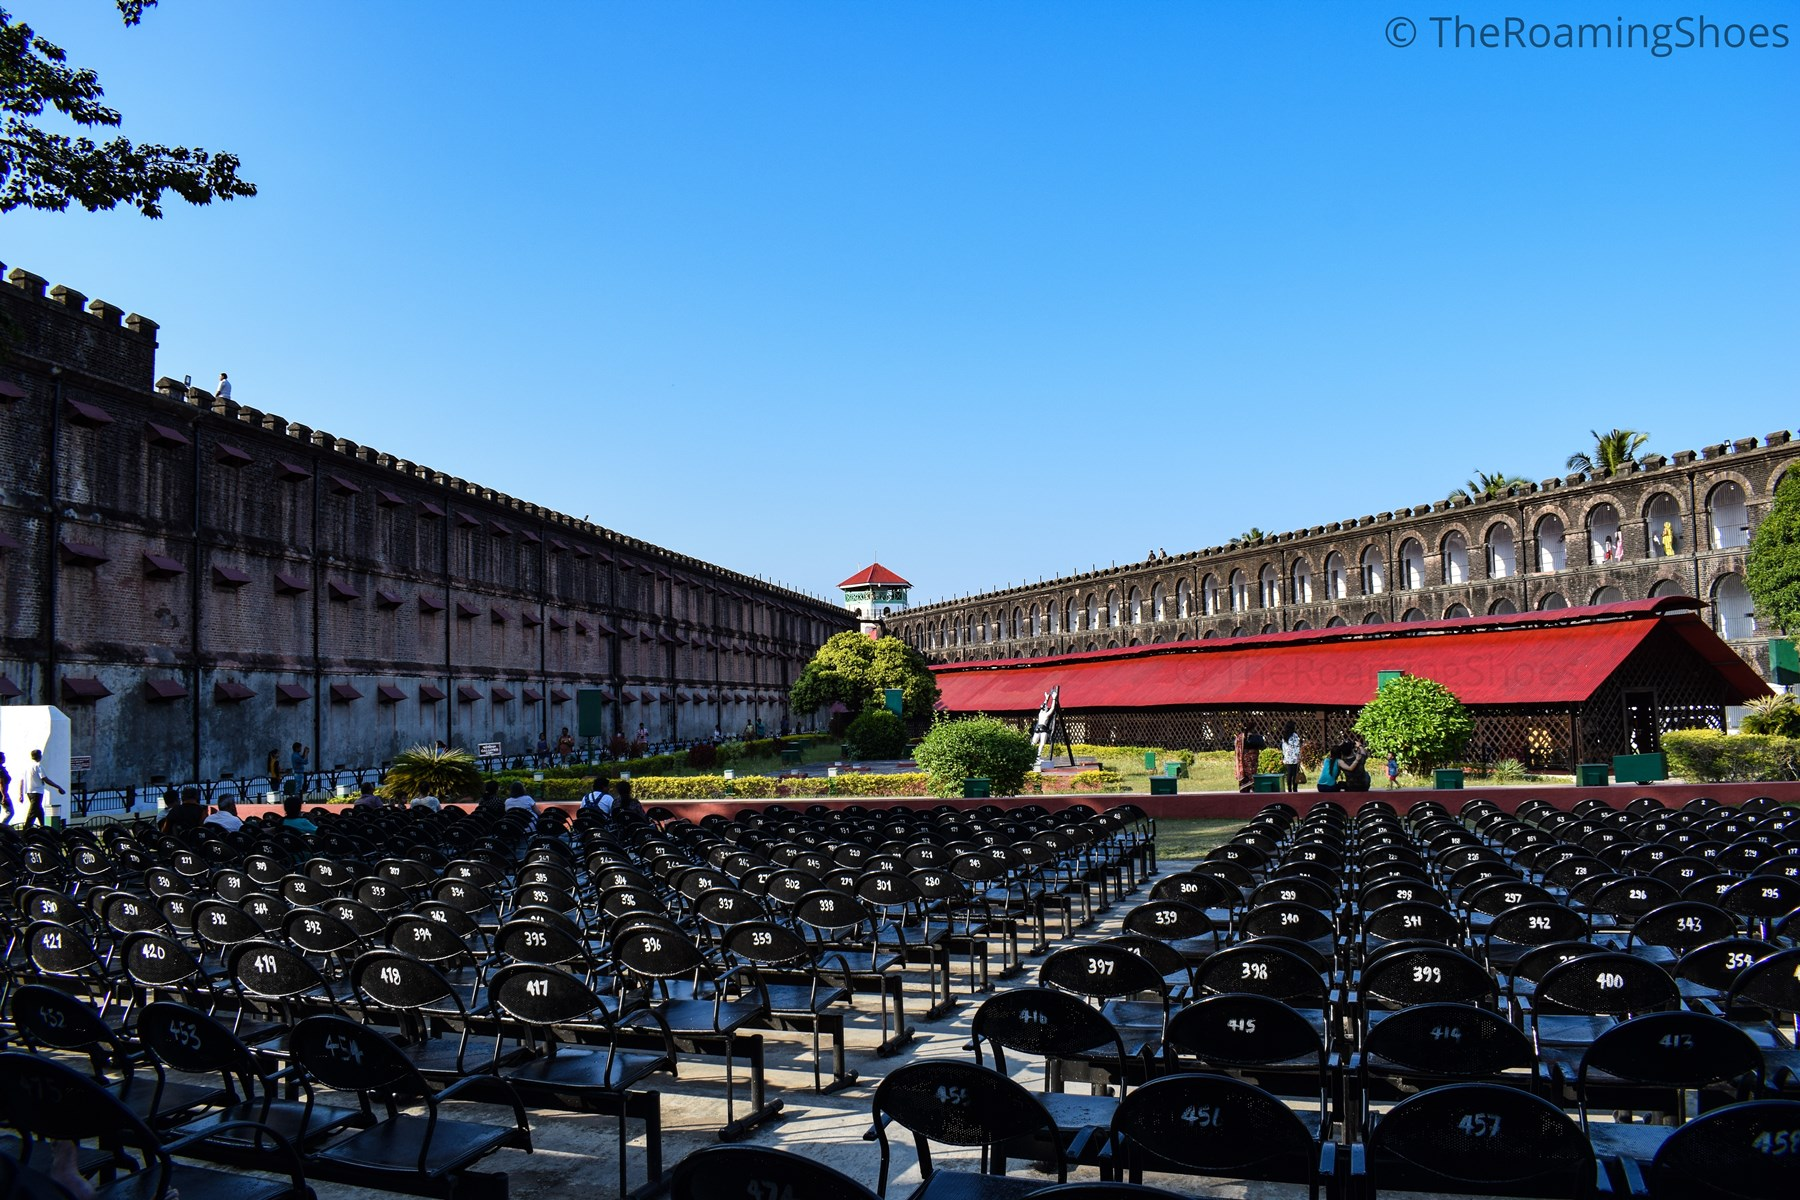 Sitting arrangement for light and sound show in cellular jail